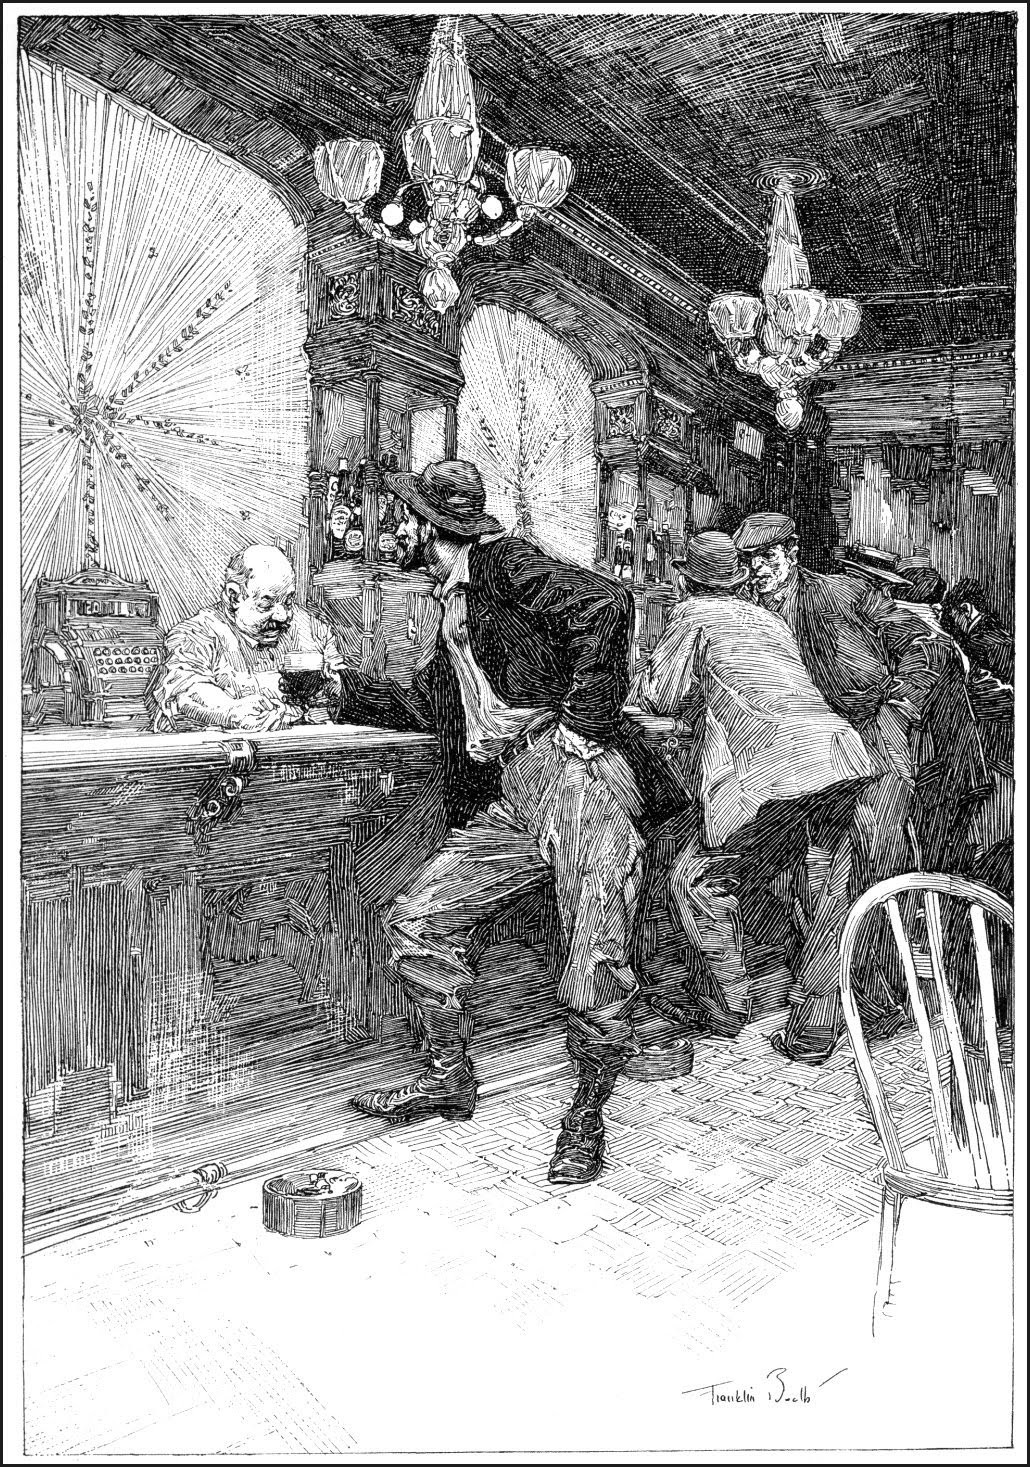 franklin_booth_graphicine_03FranklinBooth-1925Illustration-full.jpg